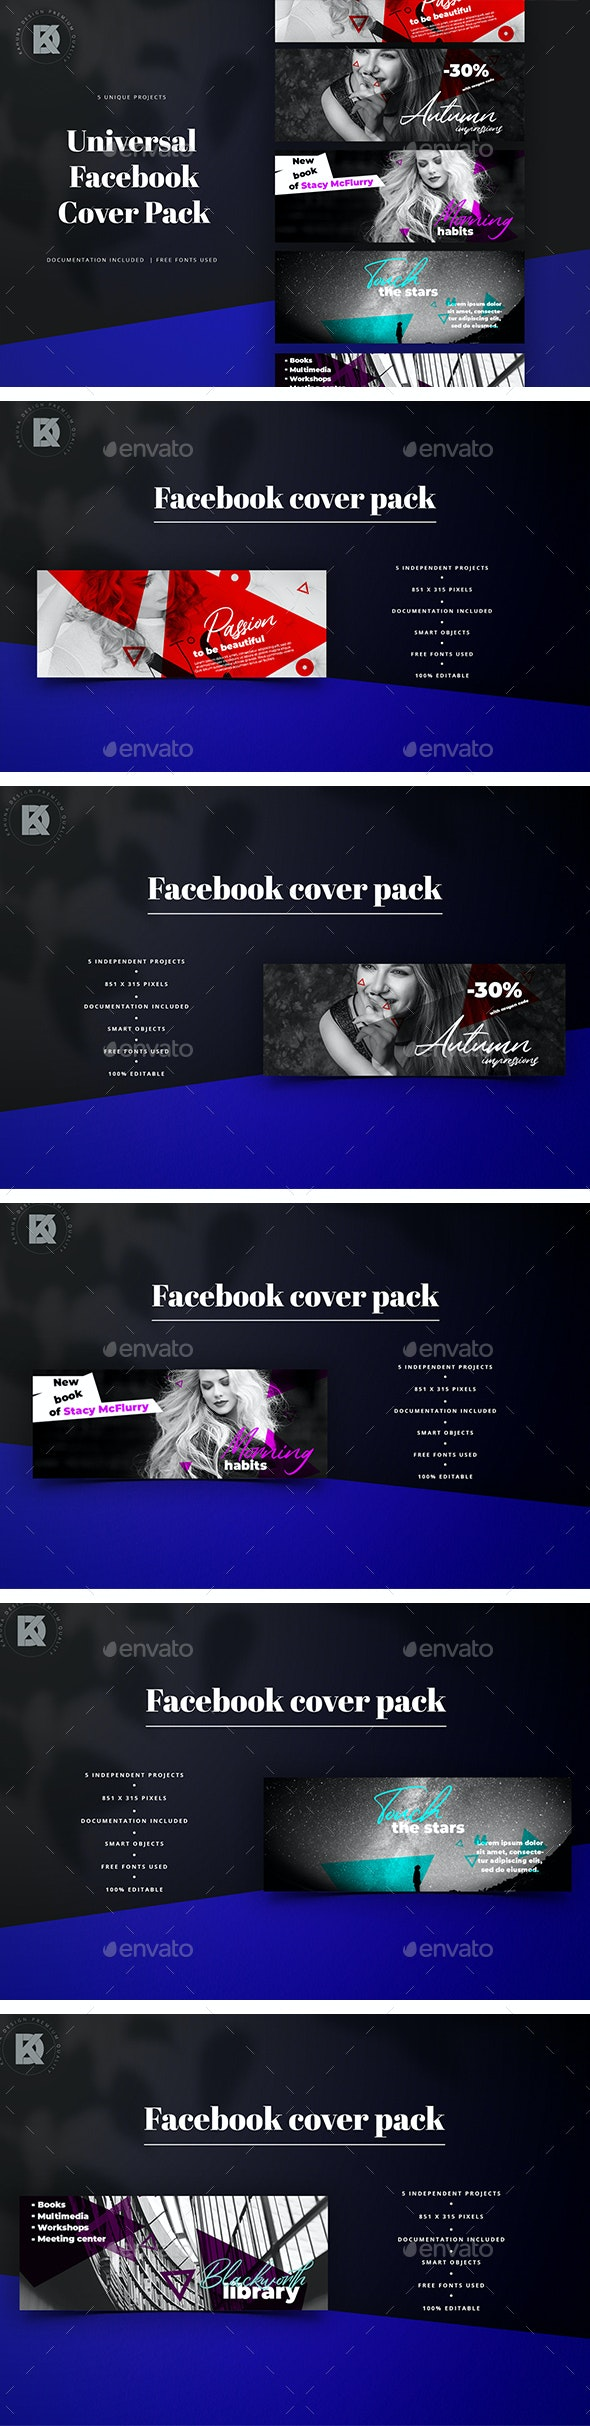 Facebook Cover Banners Pack - Facebook Timeline Covers Social Media